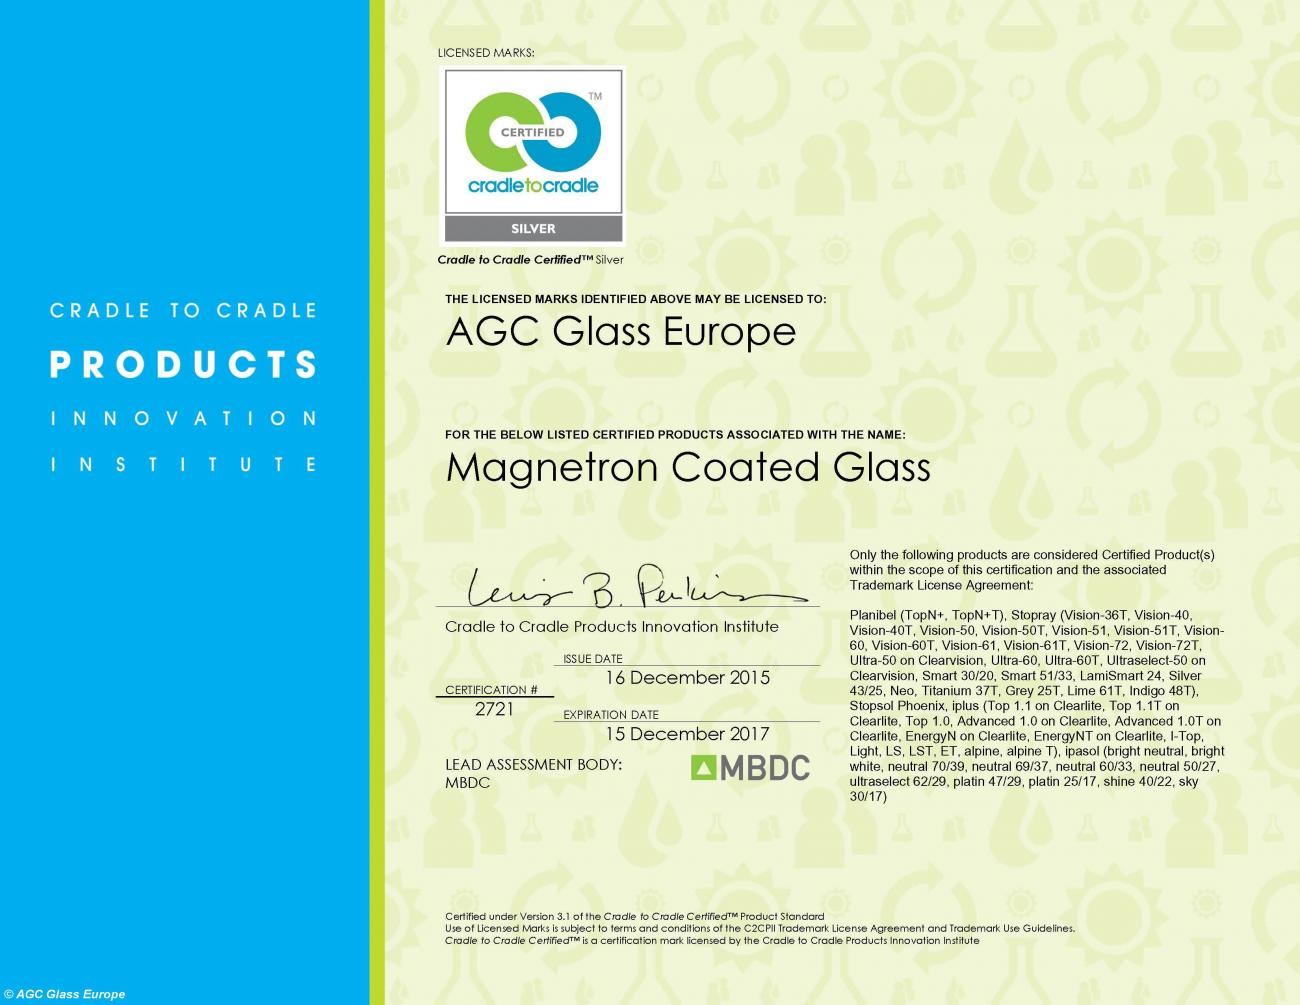 Certification Renewed For Agc Glass Products Under The New More